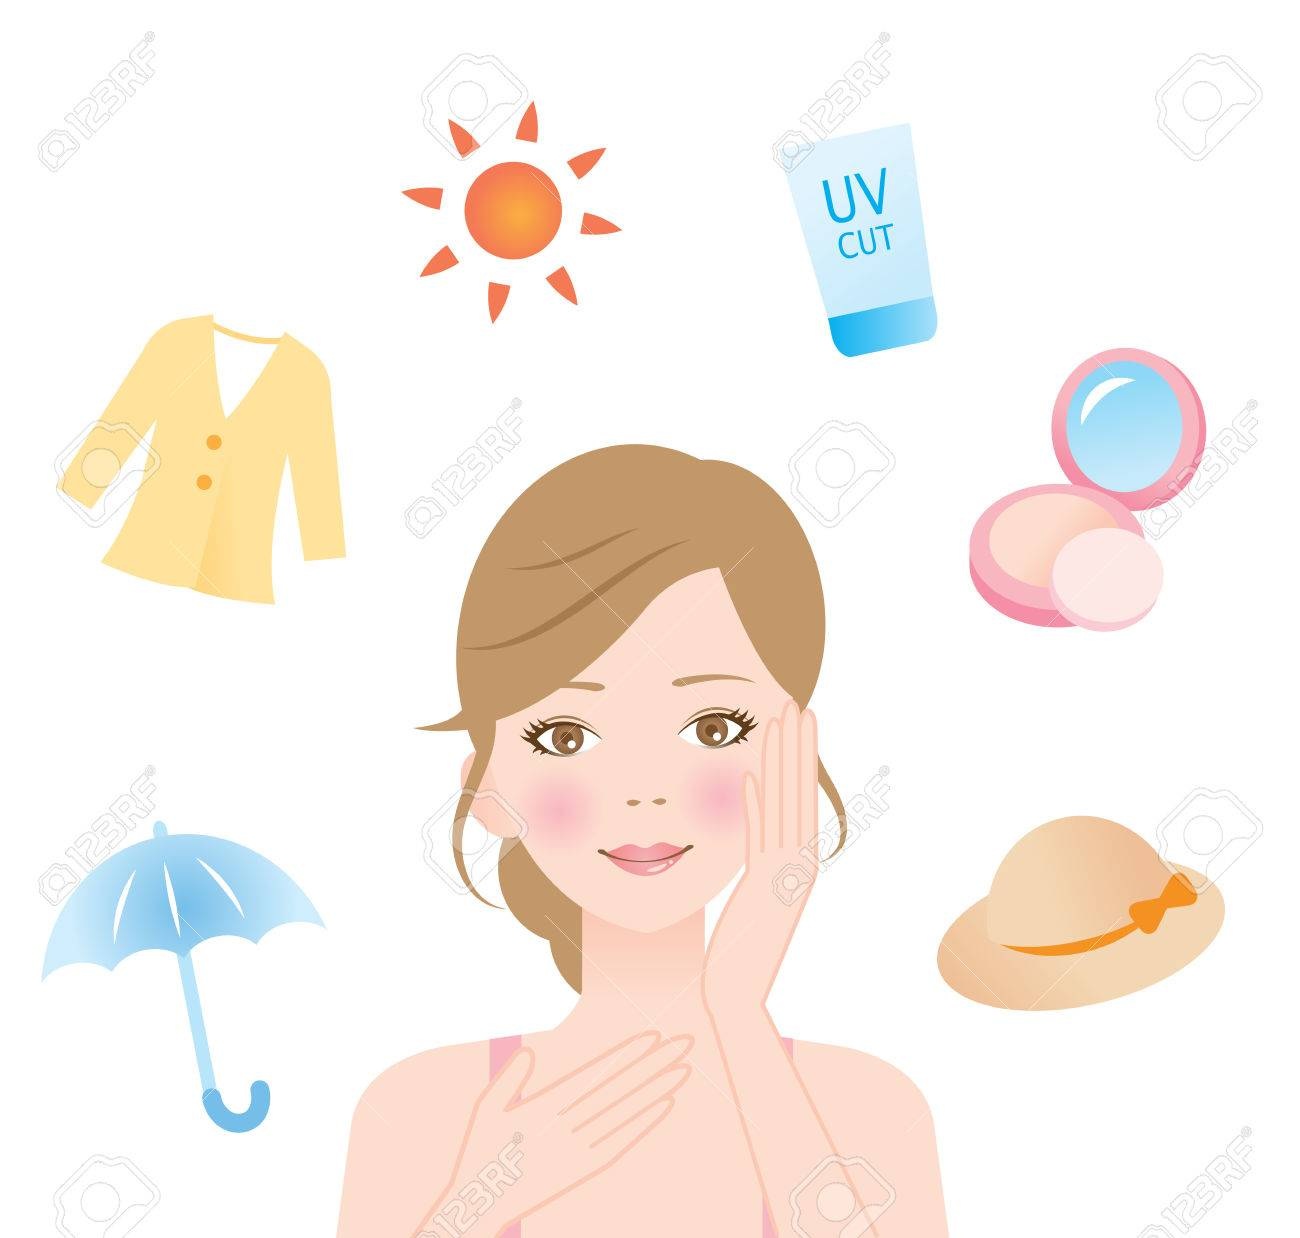 woman protect her skin from ultraviolet rays - 59920822